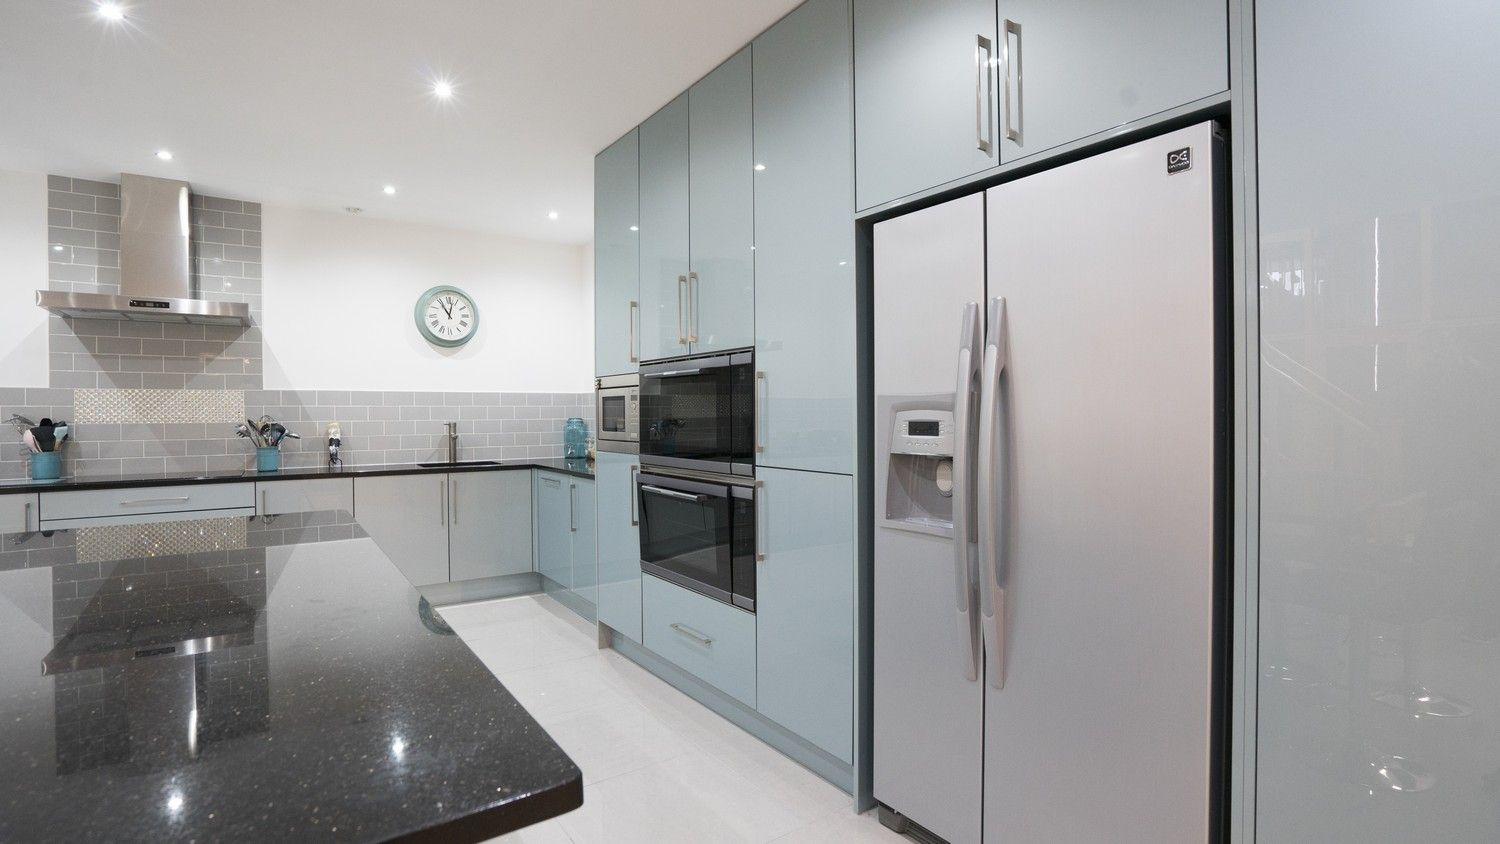 Floor To Ceiling Feature Larder Units With Integrated Appliances And Large Fridge Freezer Kitchen Kitchens And Bedrooms Modern Kitchen